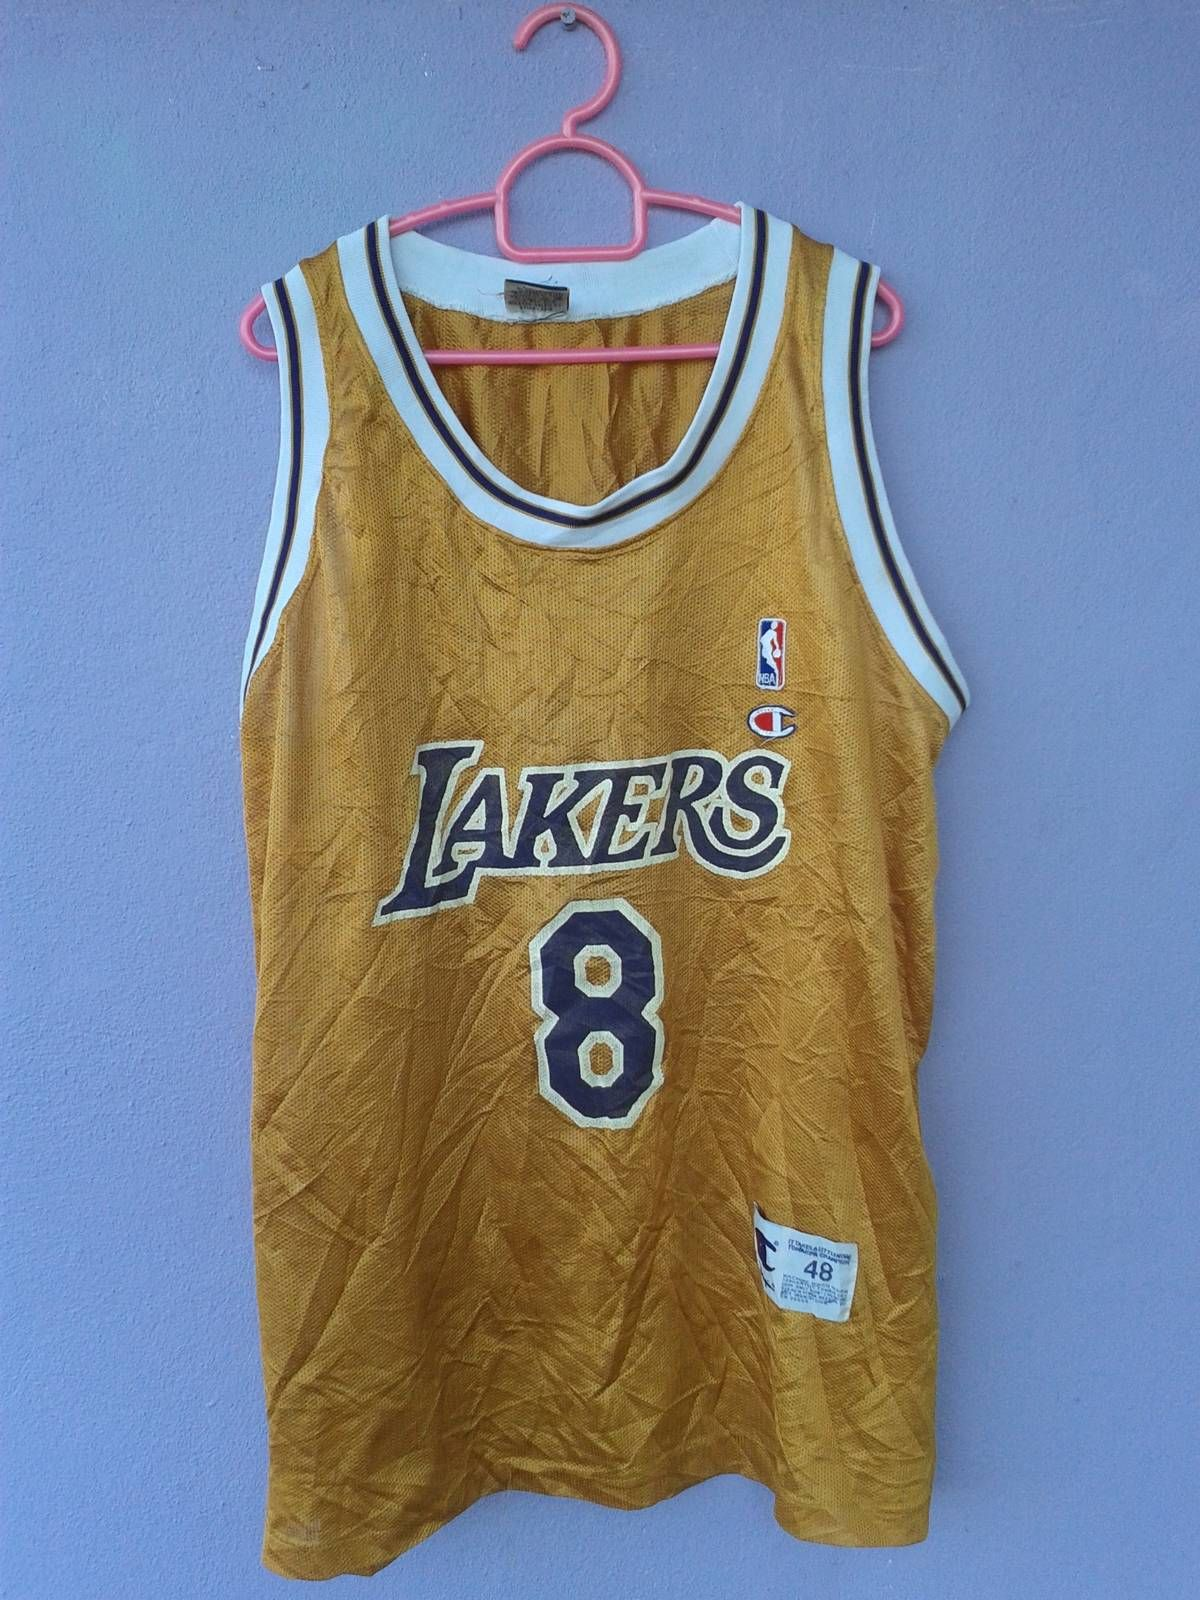 Searching for Very Rare GOLD Vintage Los Angeles Lakers NBA 8 kobe bryant  champion tank jersey f7a9074ab